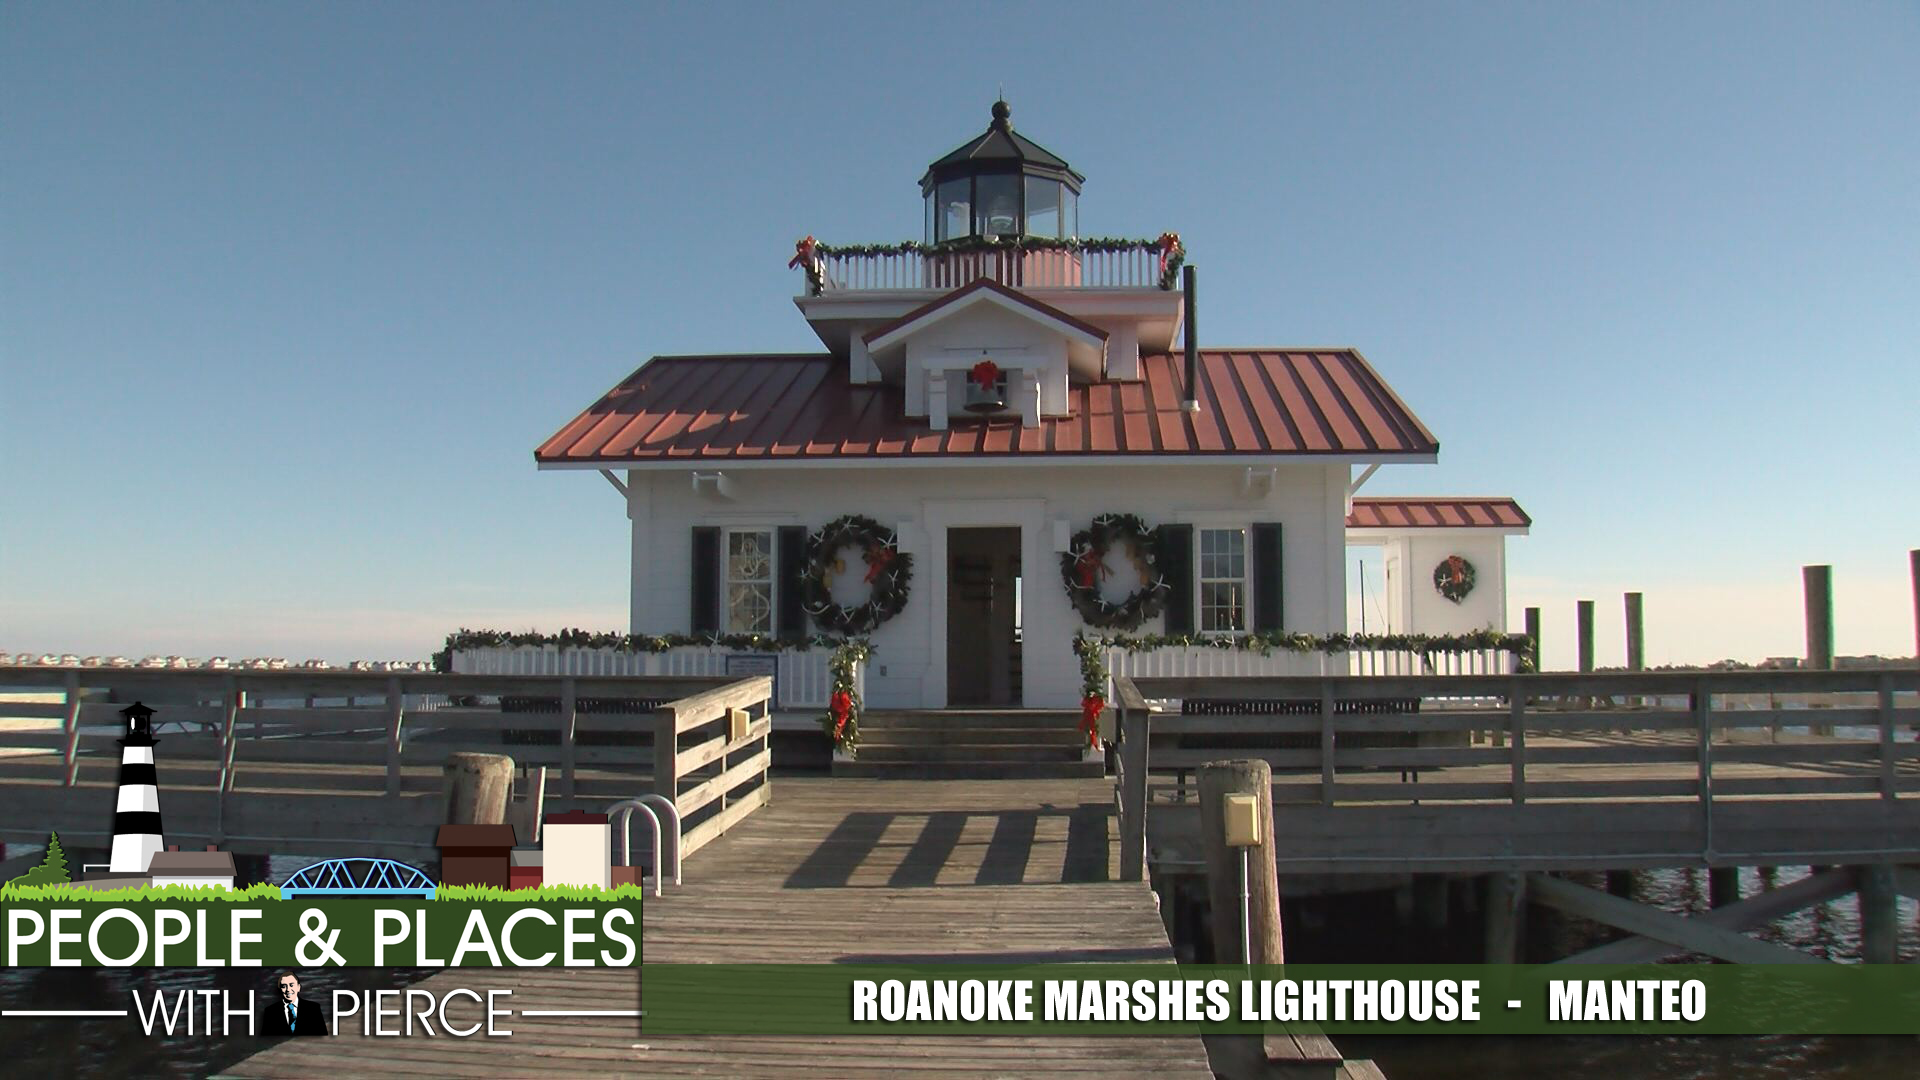 roanoke-marshes-lighthouse-for-web_313922